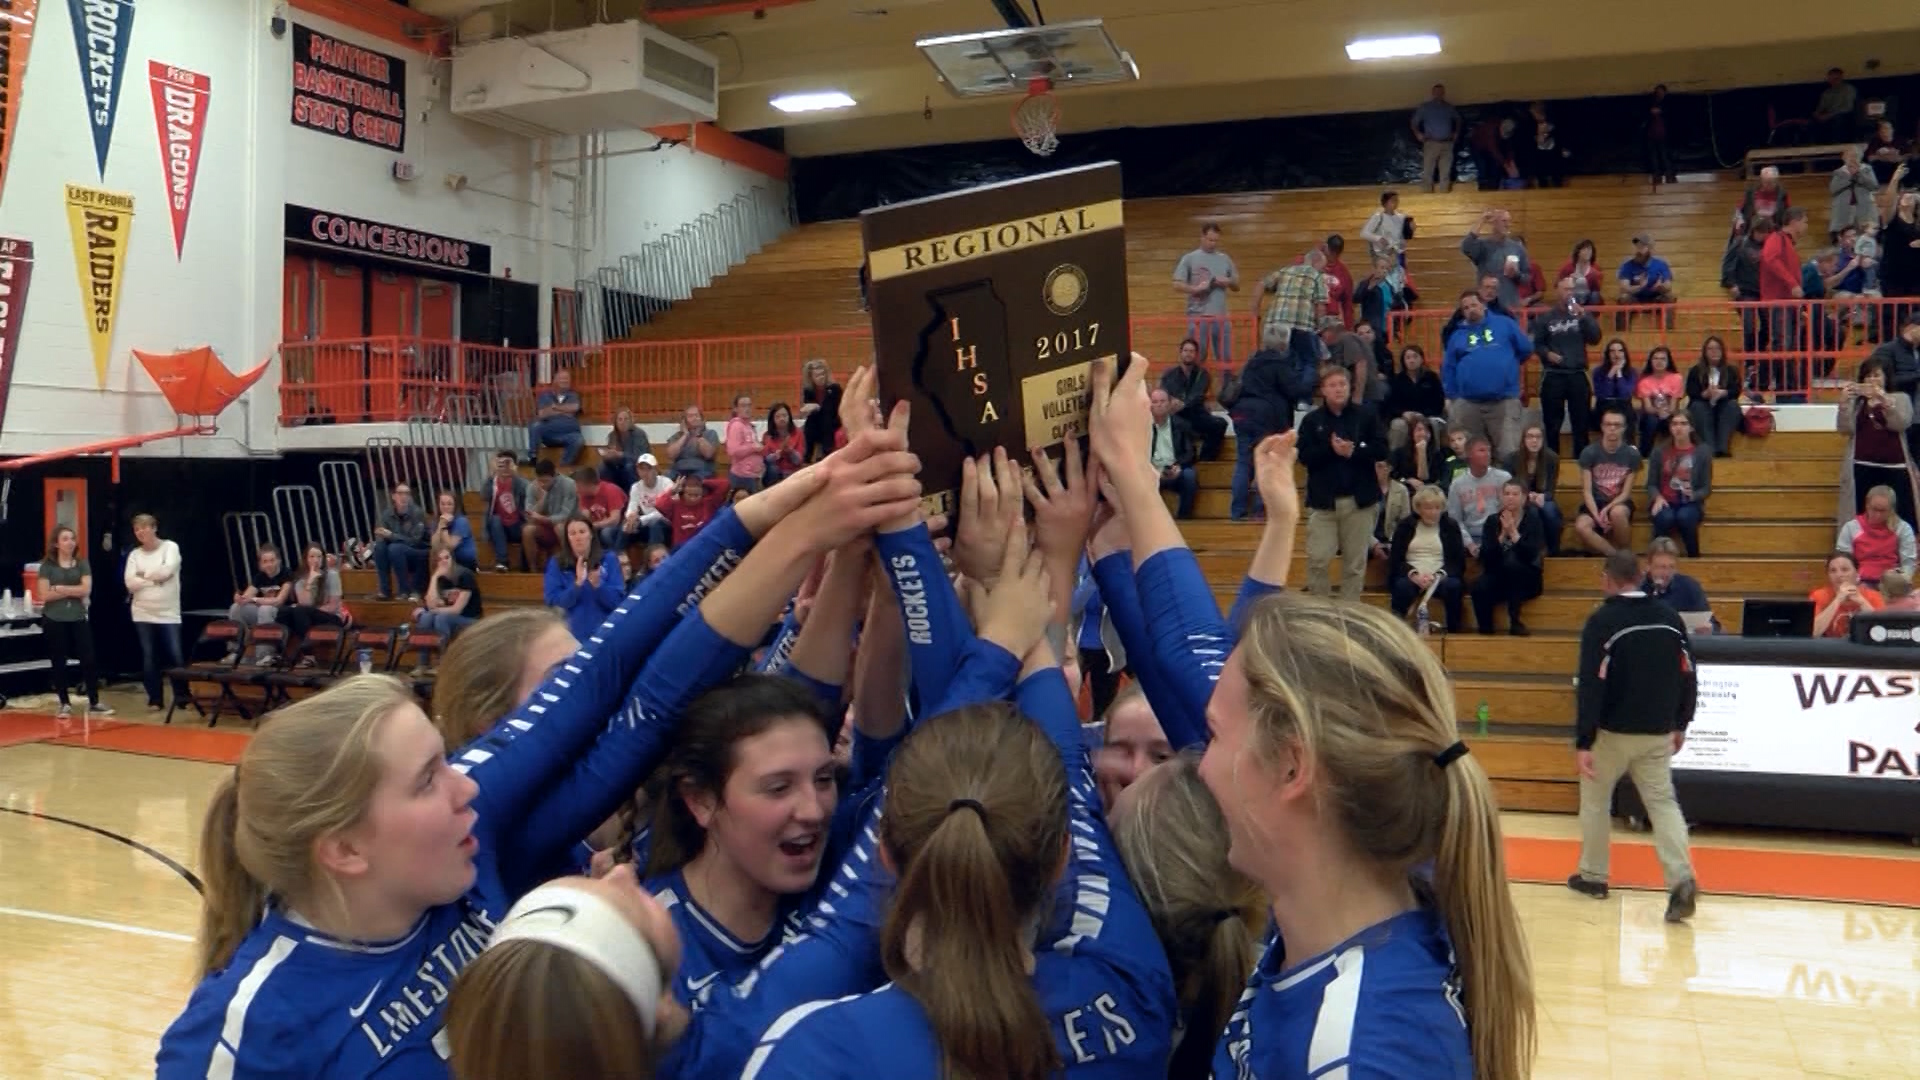 Limestone VB with regional trophy_1509076266247.jpg